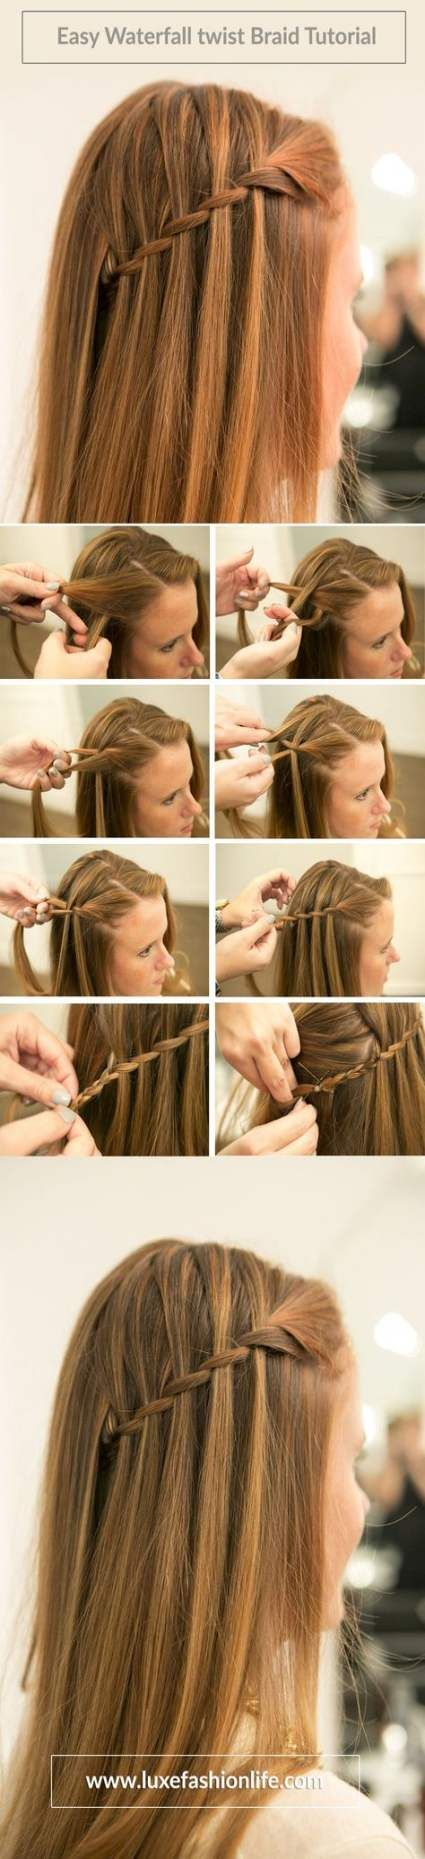 Hairstyles Tutorial Easy Waterfall Braids 50 Ideas For 2019